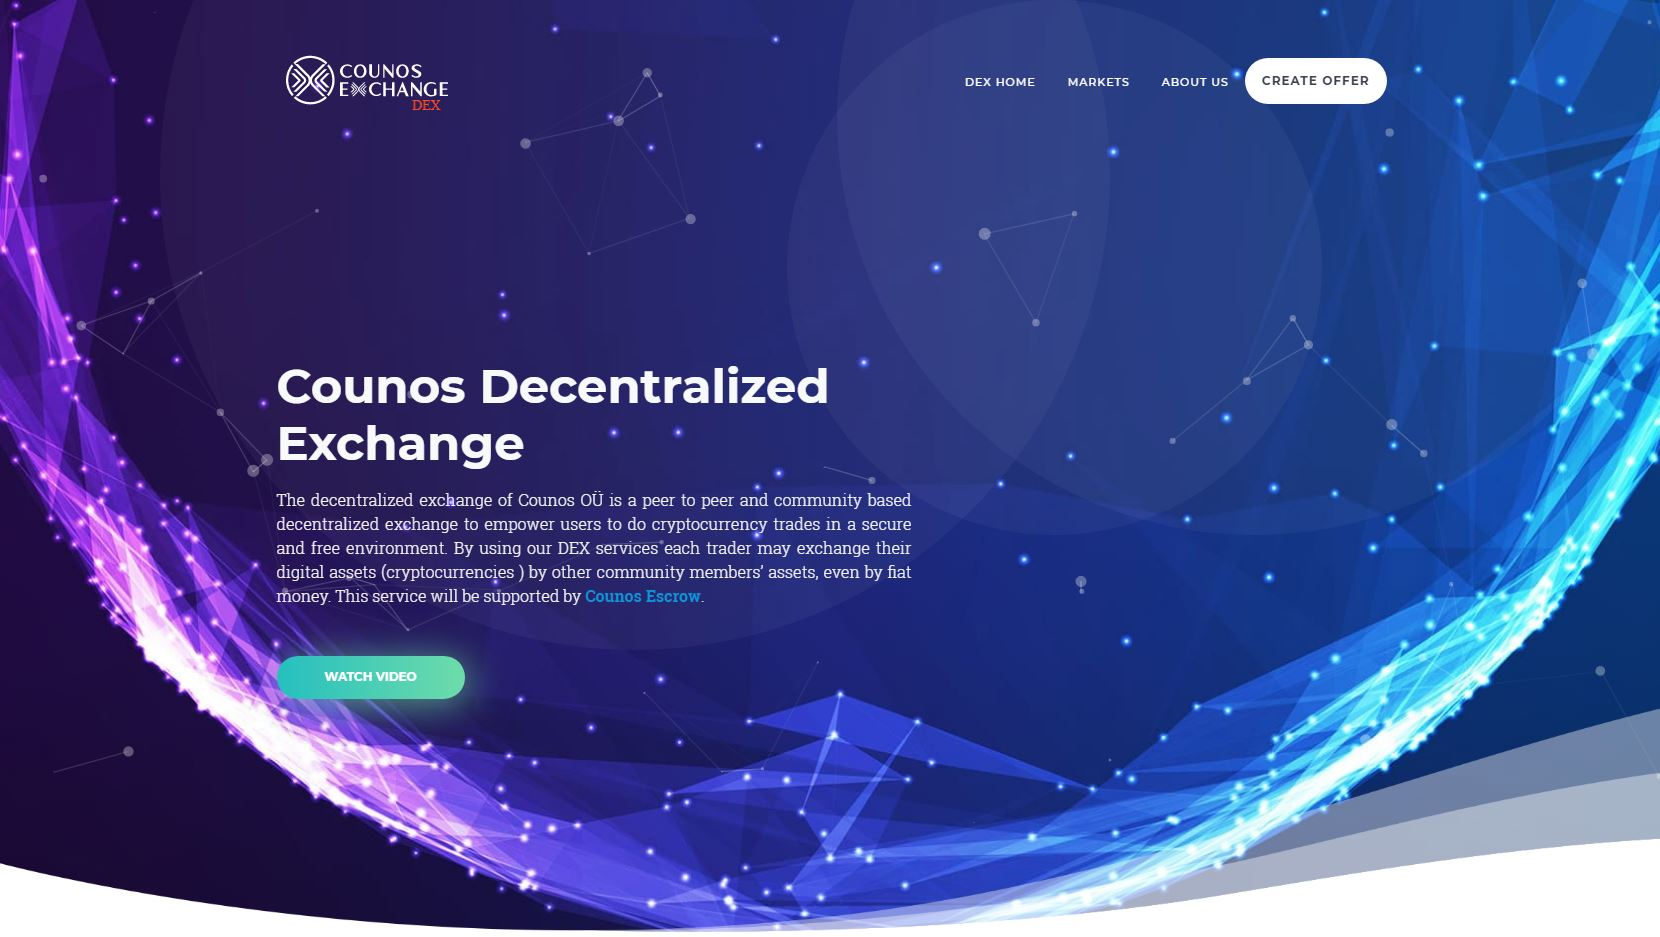 Counos Decentralized Exchange has become the first choice of many involved in the Crypto Economy